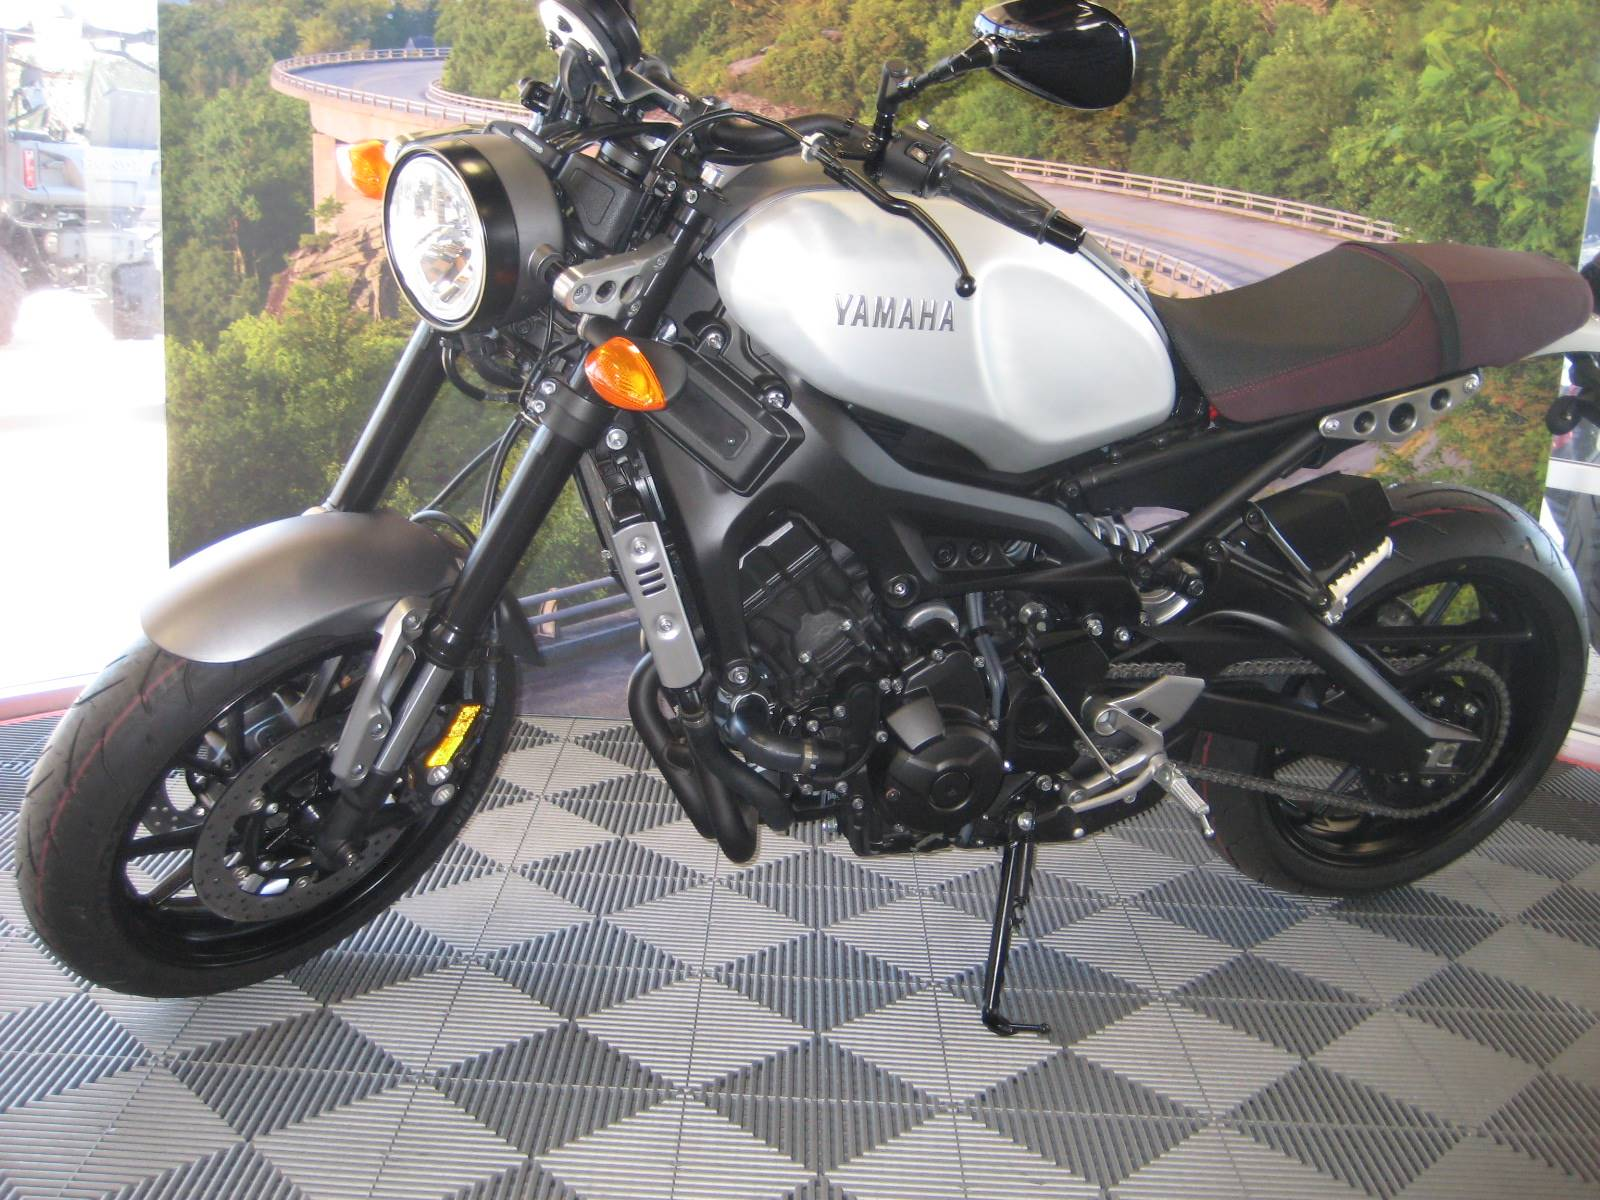 2016 Yamaha XSR900 for sale 29726